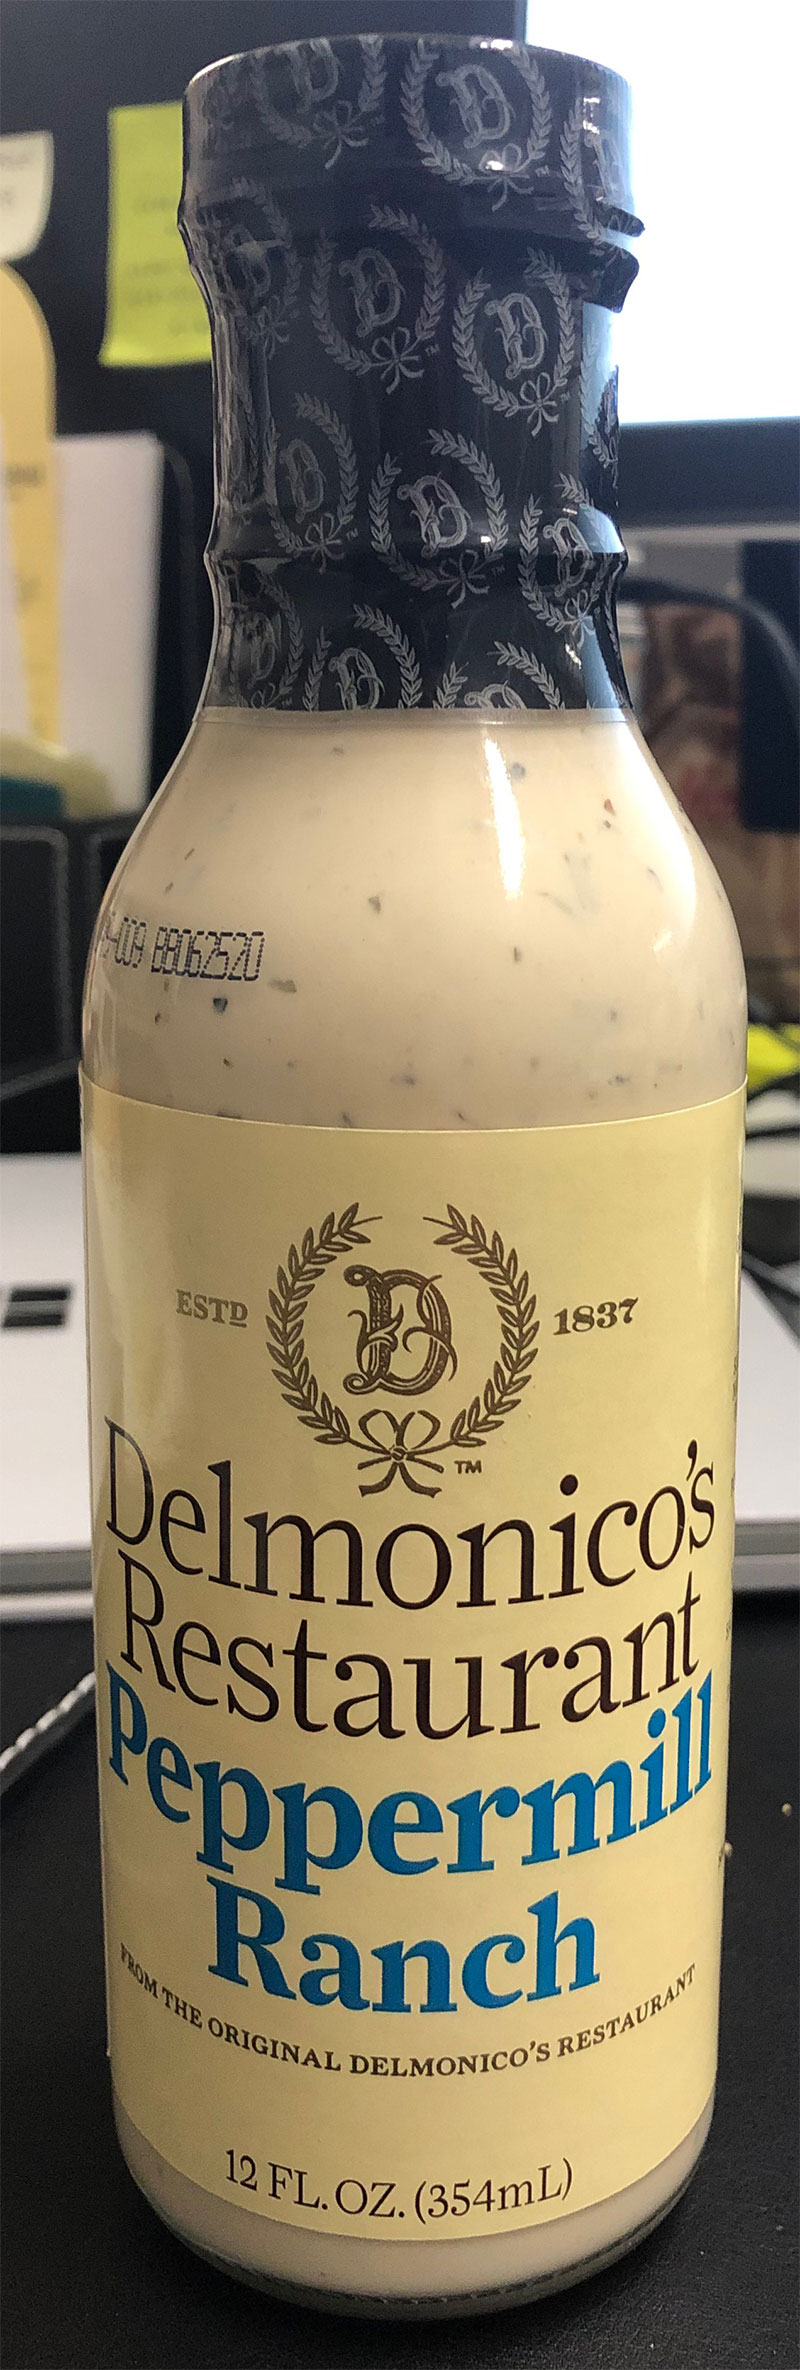 Delmonico's Restaurant: Peppermill Ranch - 354 ml